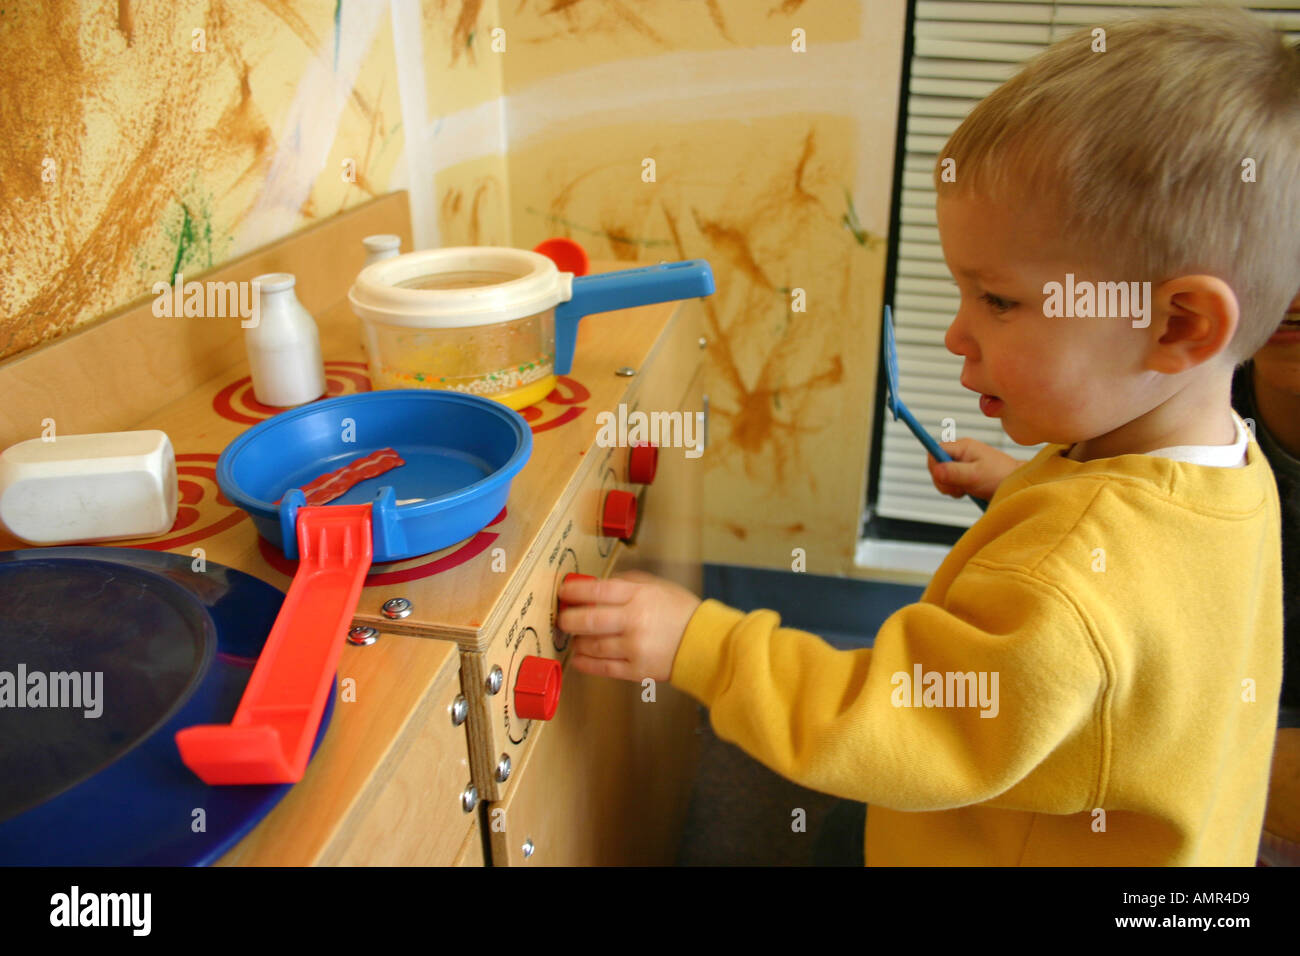 one year old engaged in pretend play cooking kitchen in ...